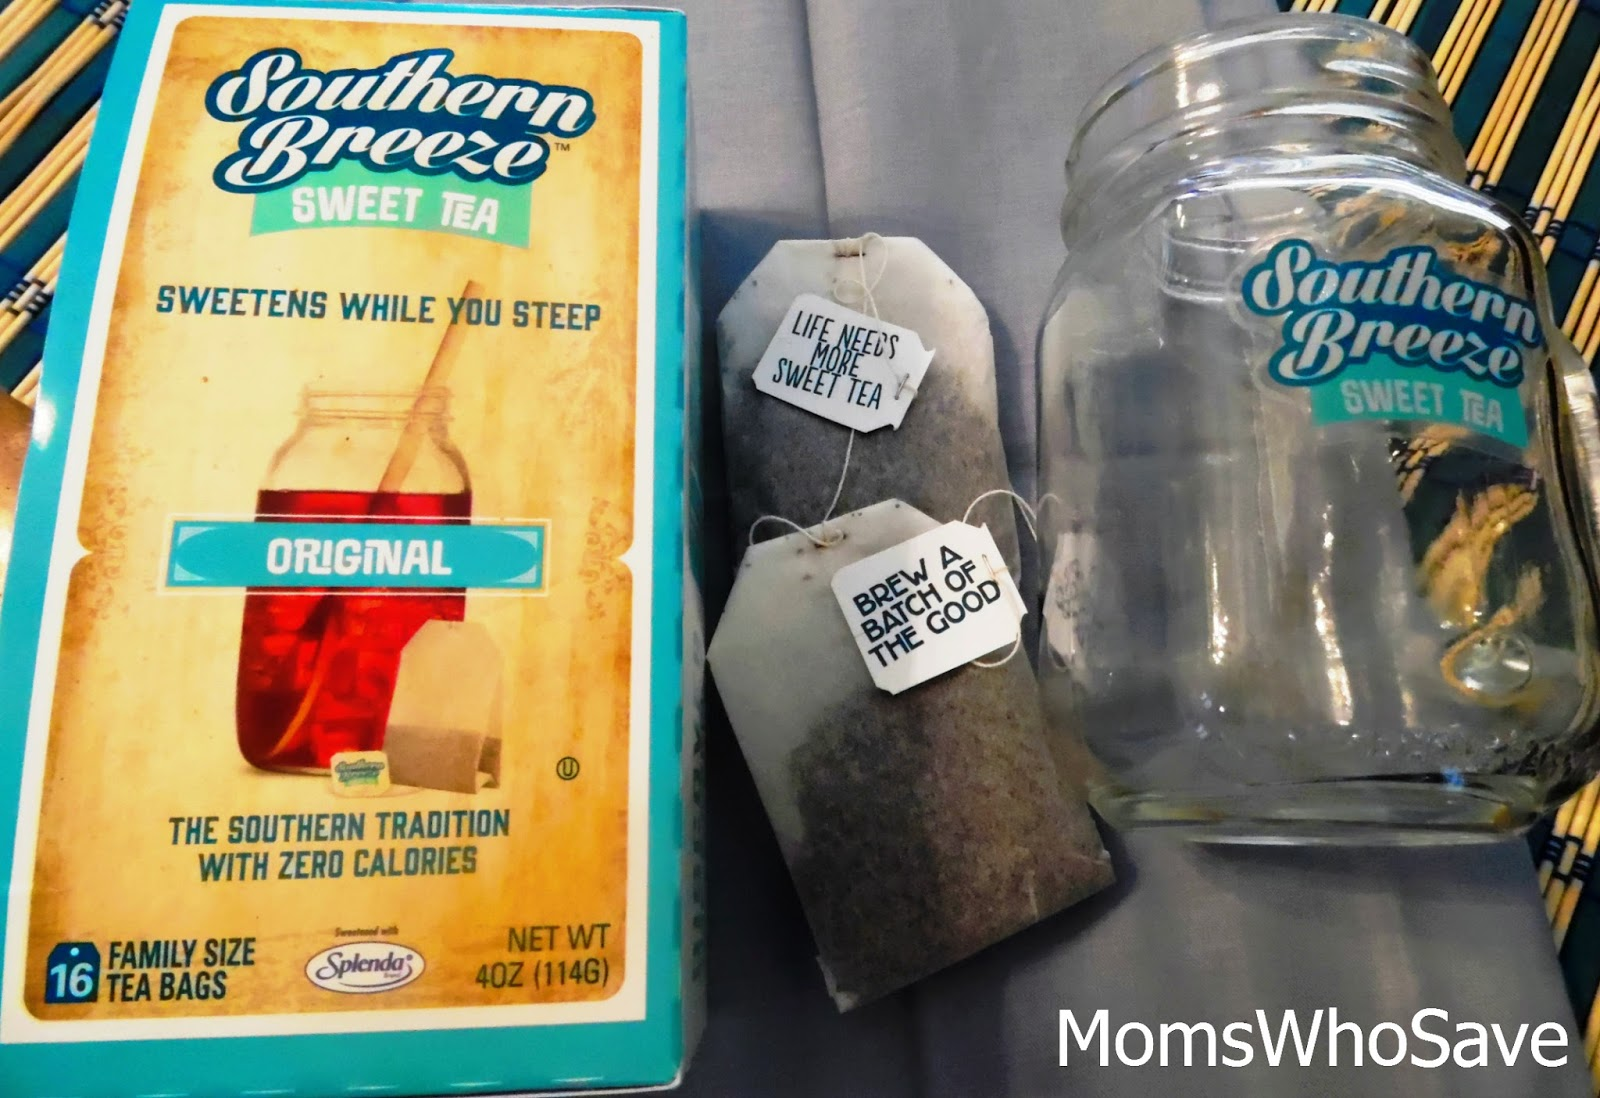 Zero-Calorie Sweet Tea -- Southern Breeze Sweet Tea is Here + a Giveaway!